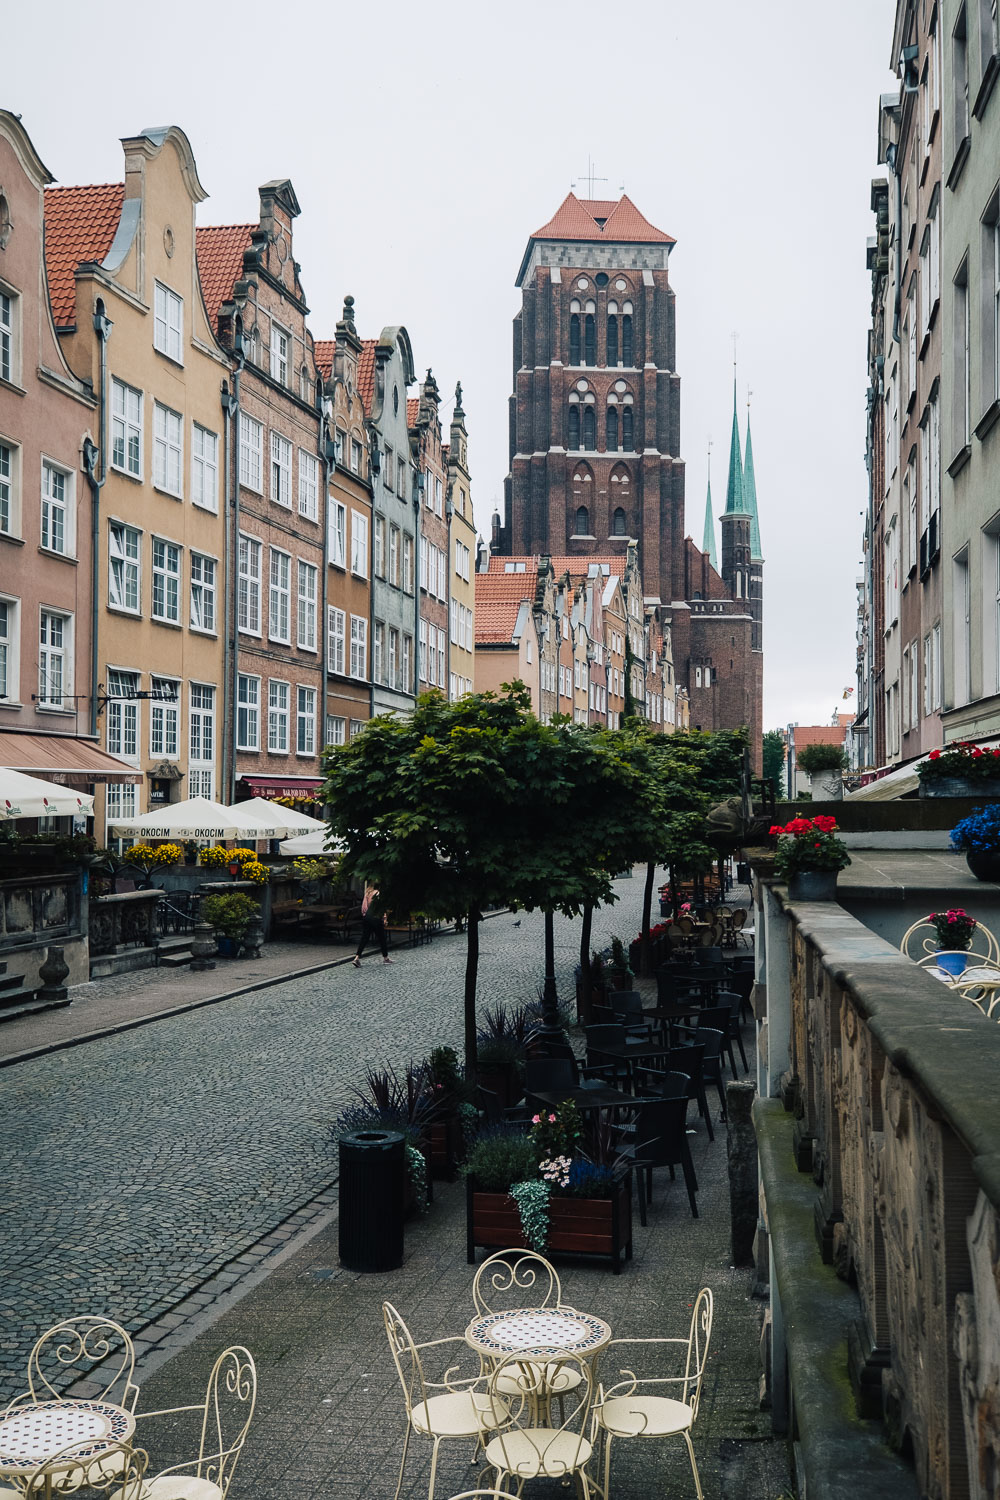 Ulica Piwna (Beer Street) in Gdanks | Things to do in 48 hours in Gdansk, Poland